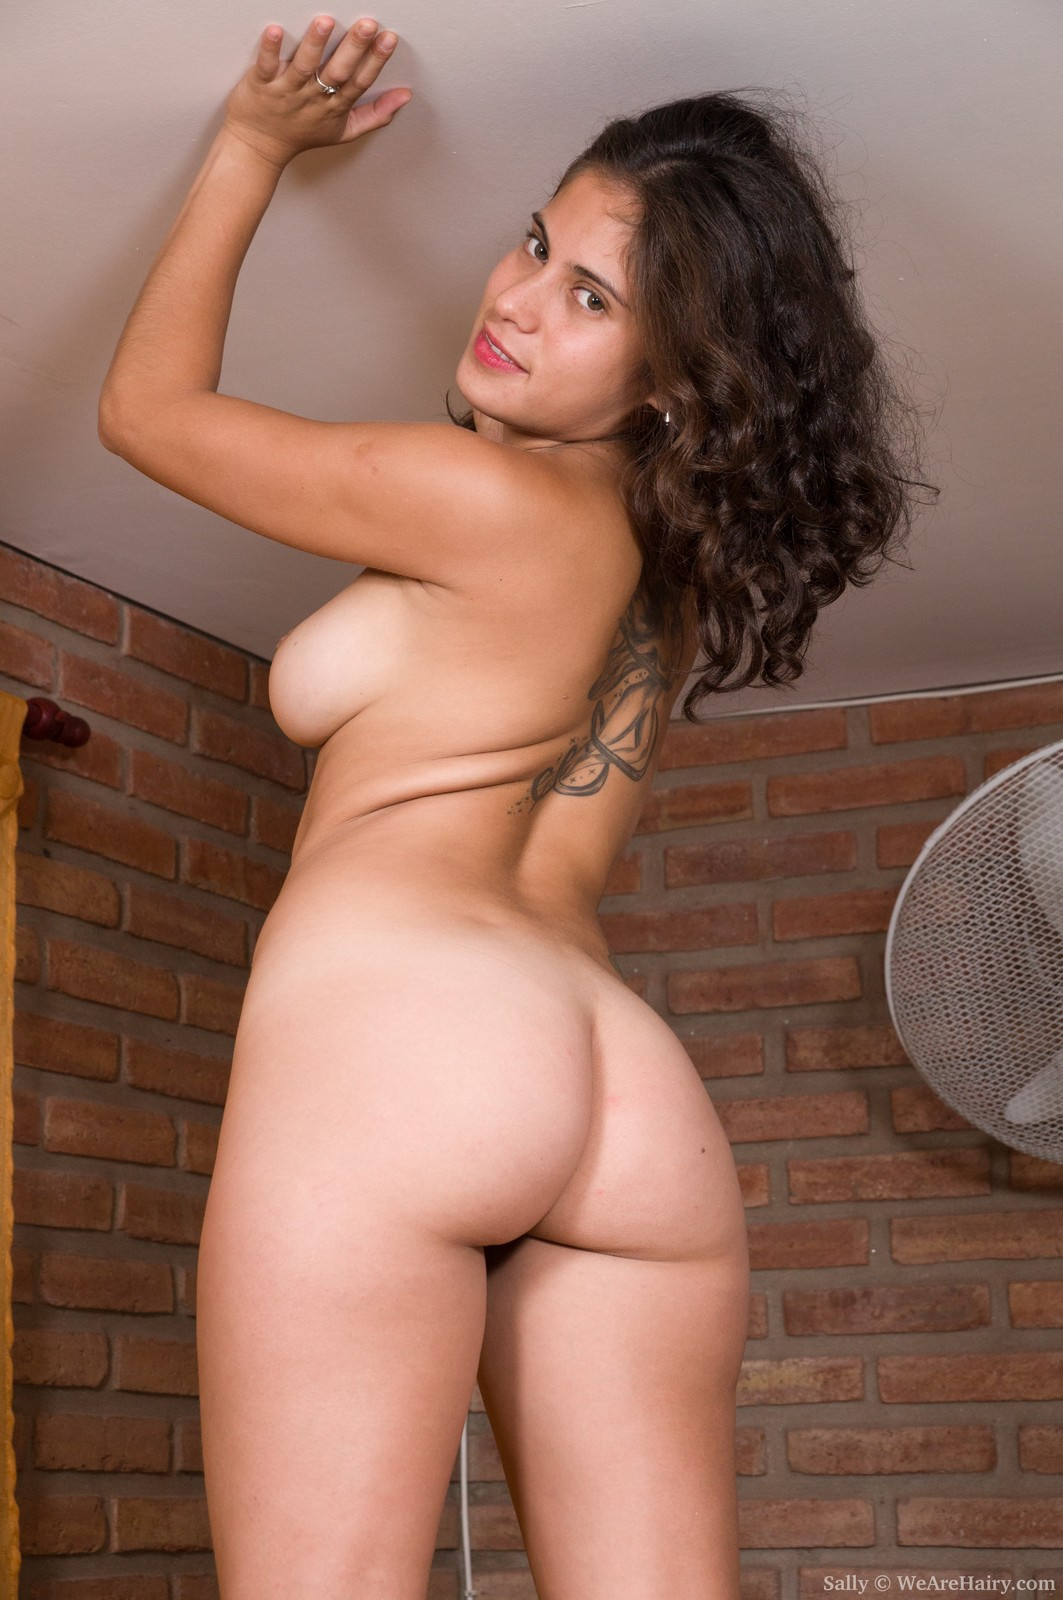 latina girl spreads hairy bush | the hairy lady blog